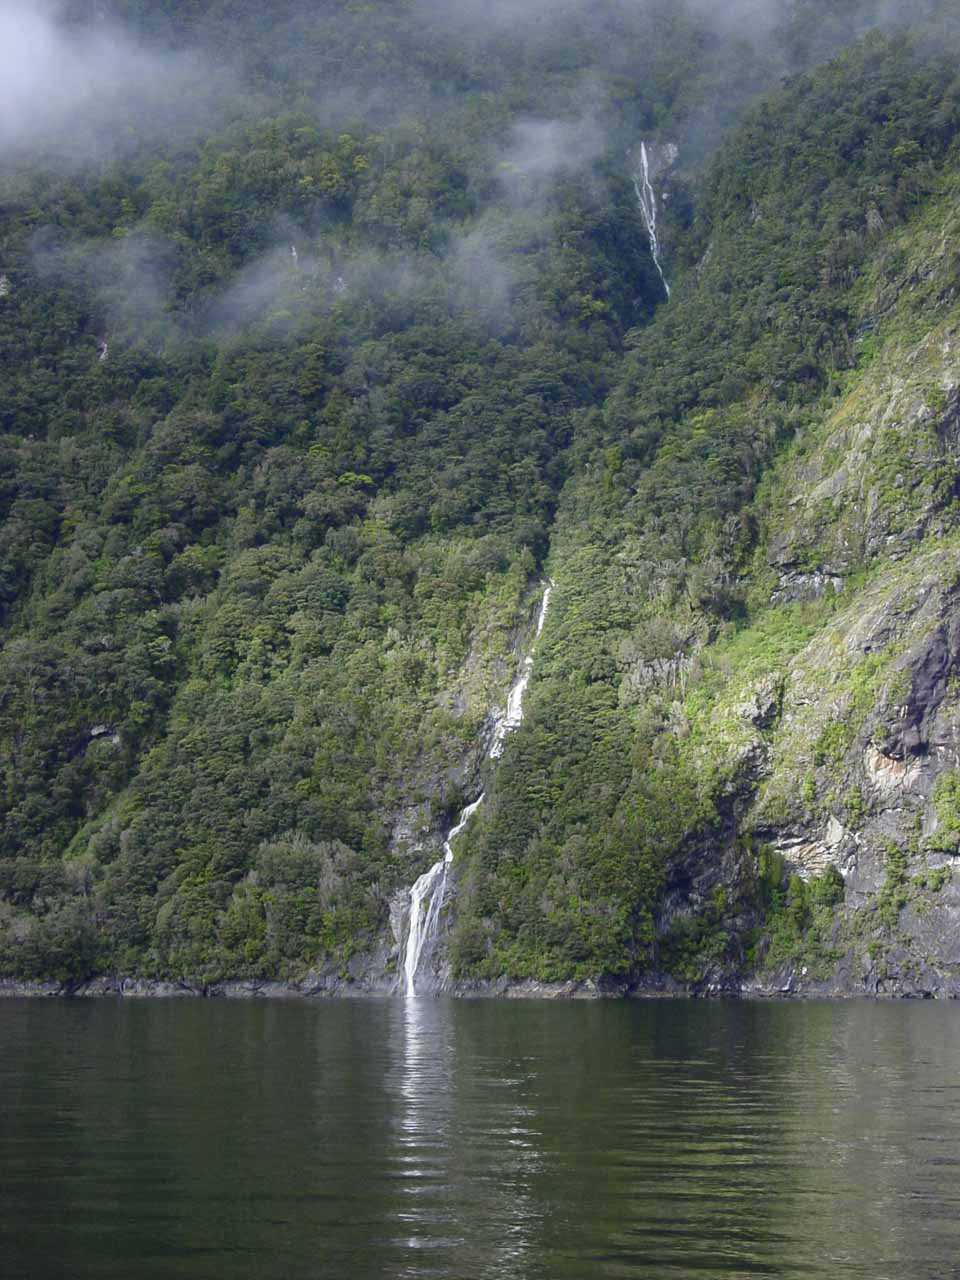 Looking towards one of the more pronounced temporary waterfalls during our 2004 cruise